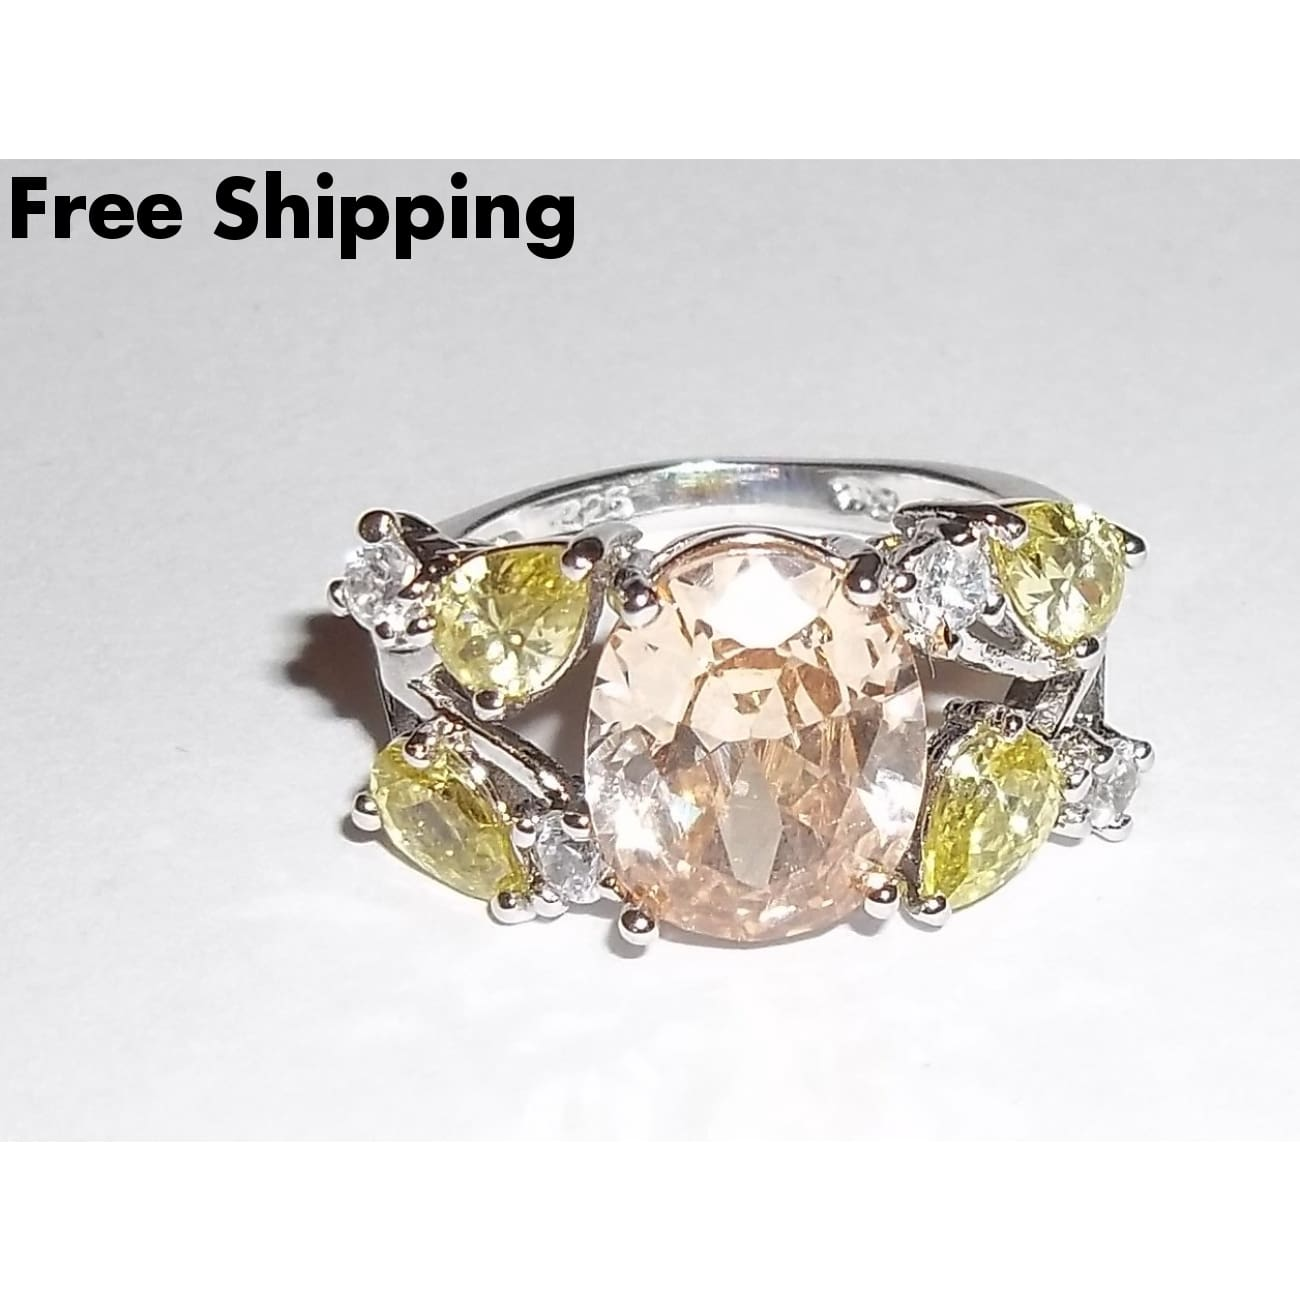 Peach Topaz With Yellow Teardrop Topaz & White Sapphire Accents .925 Sterling Silver Ring Sz8 - Rings